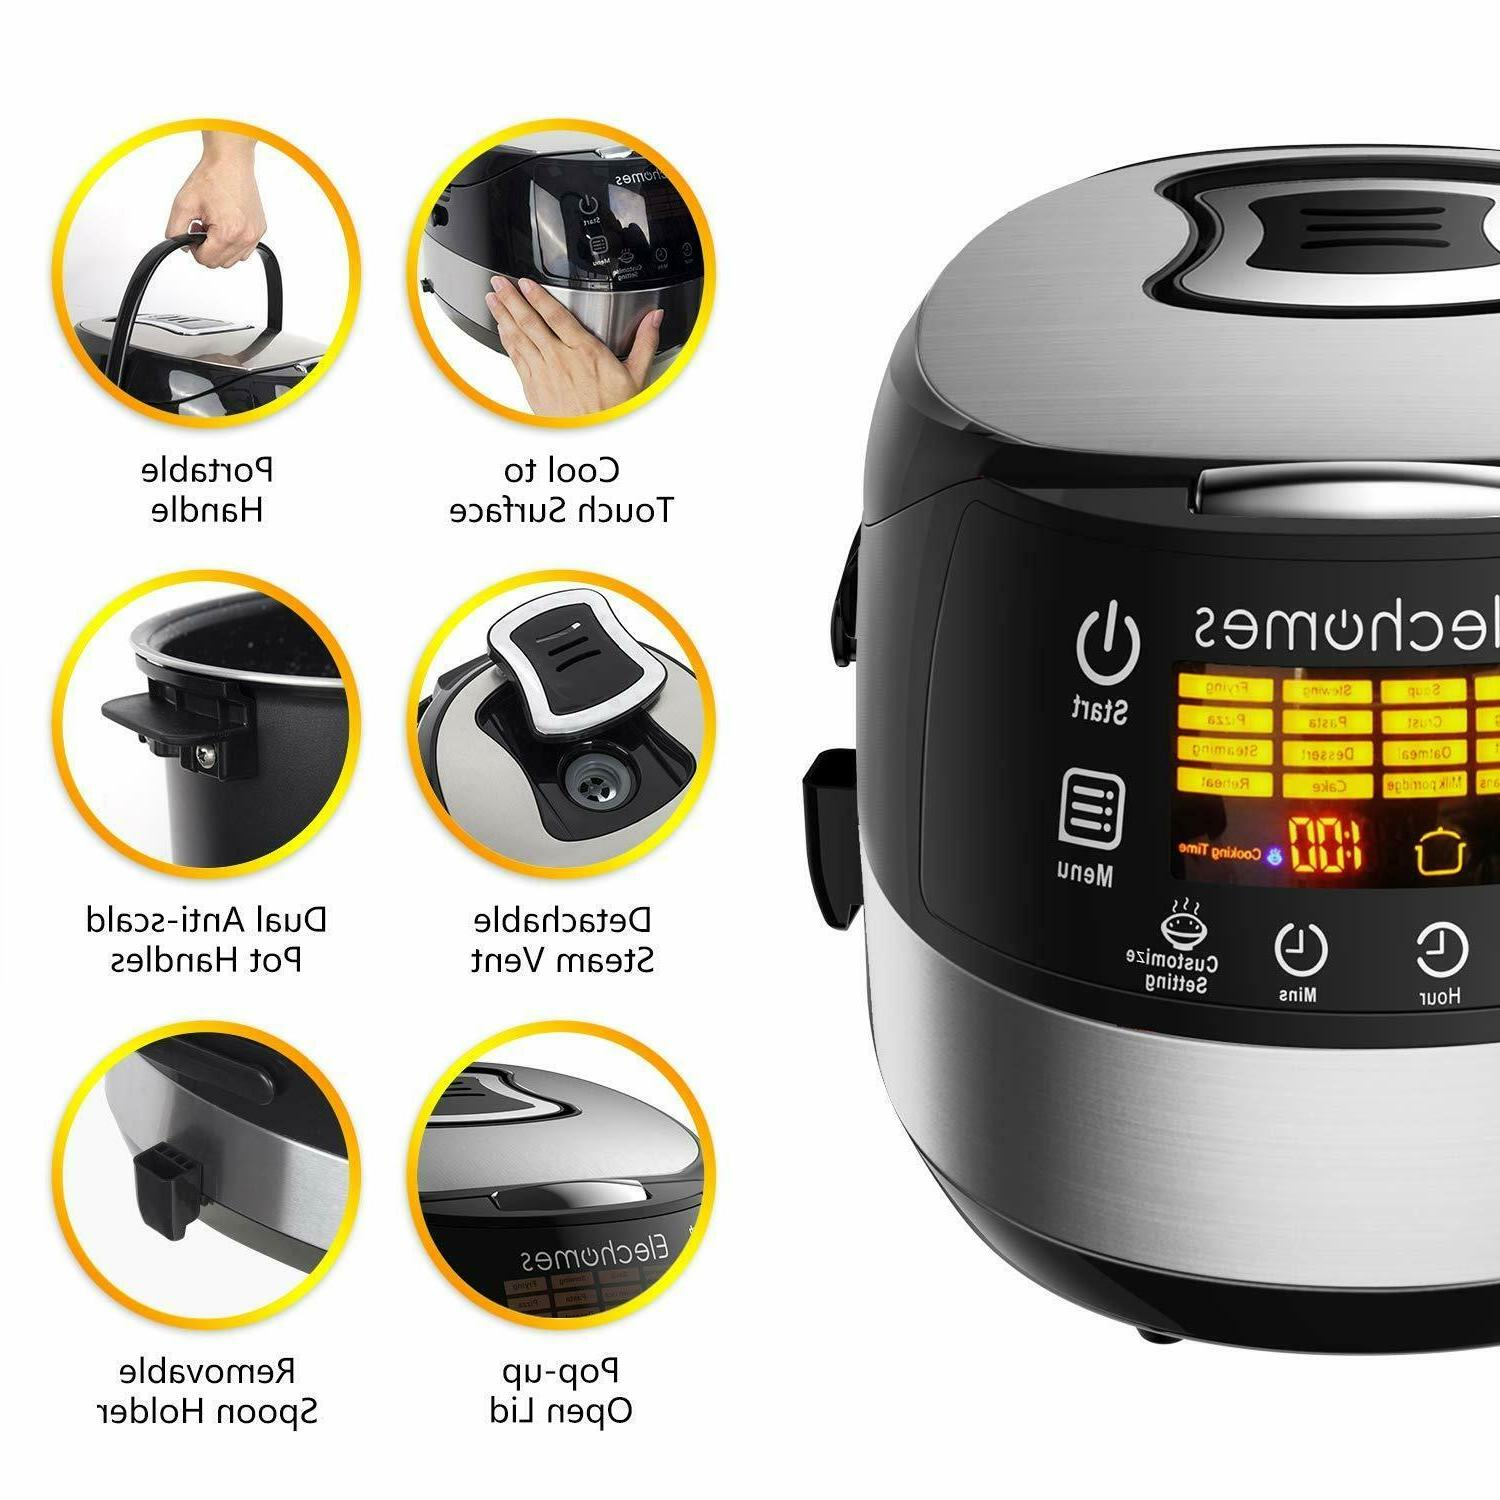 16 Multi Function LED Control New